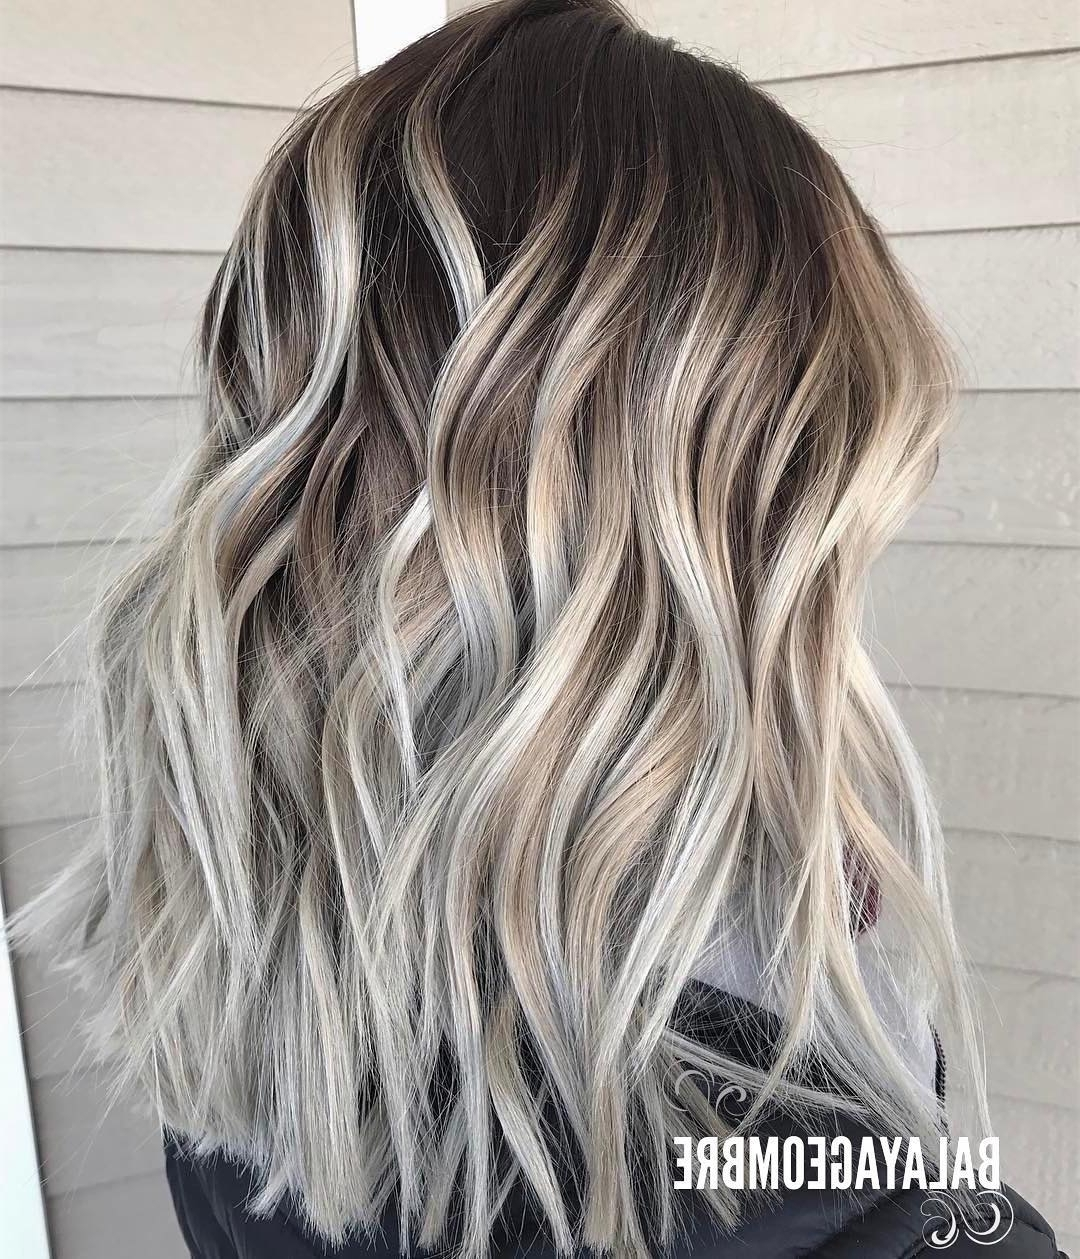 Recent Contrasting Highlights Blonde Hairstyles Intended For 10 Best Medium Layered Hairstyles 2018 Brown & Ash Blonde Fashion Colors (Gallery 8 of 20)